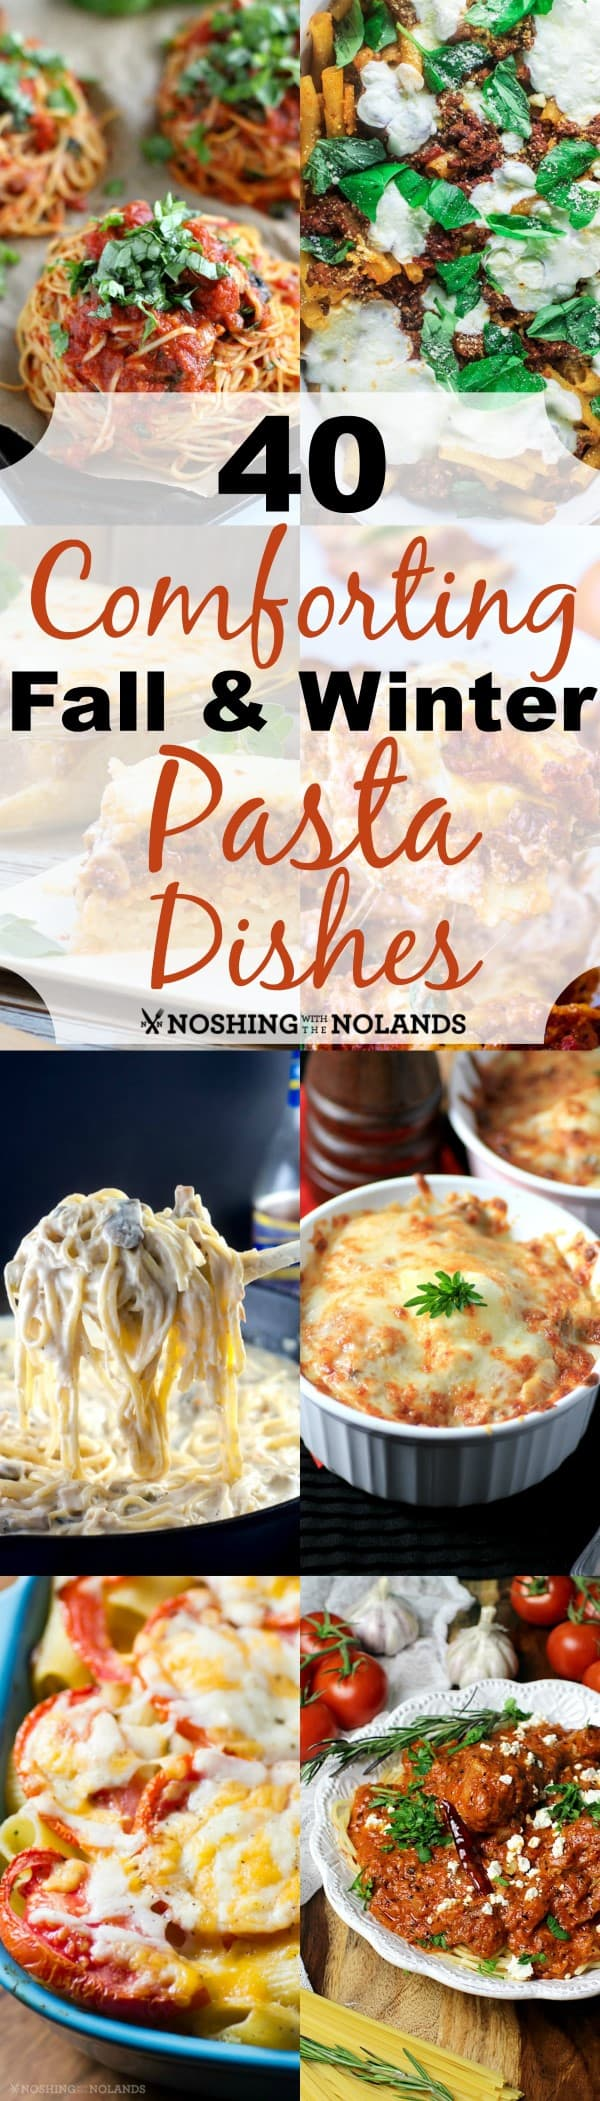 40 Comforting Fall & Winter Pasta Dishes Collage 2 (Custom) (2)